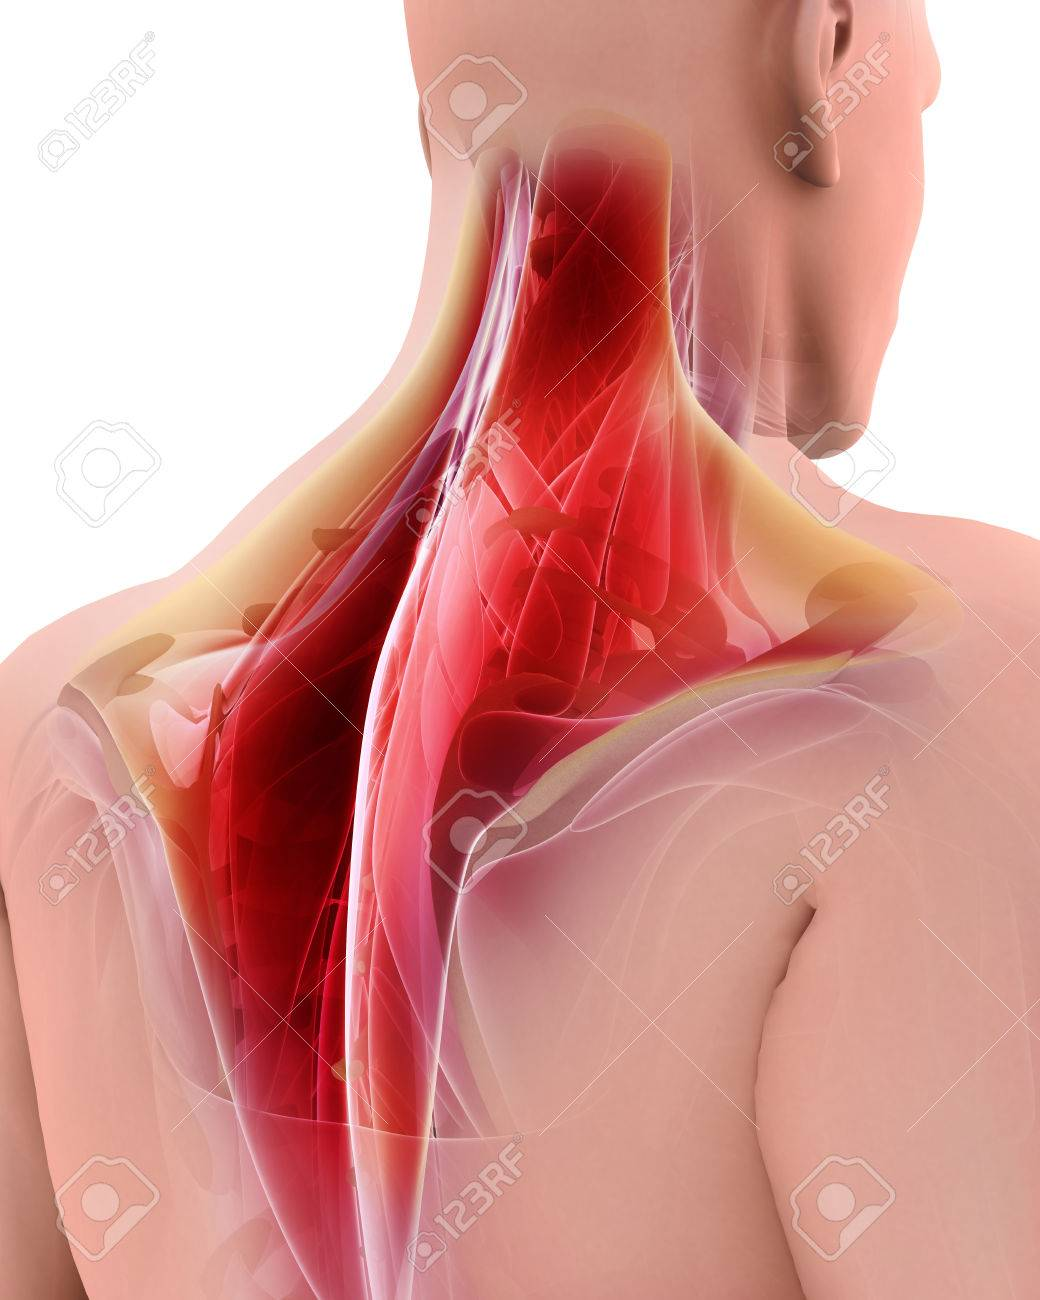 3D Illustration Of Trapezius, Part Of Muscle Anatomy. Stock Photo ...